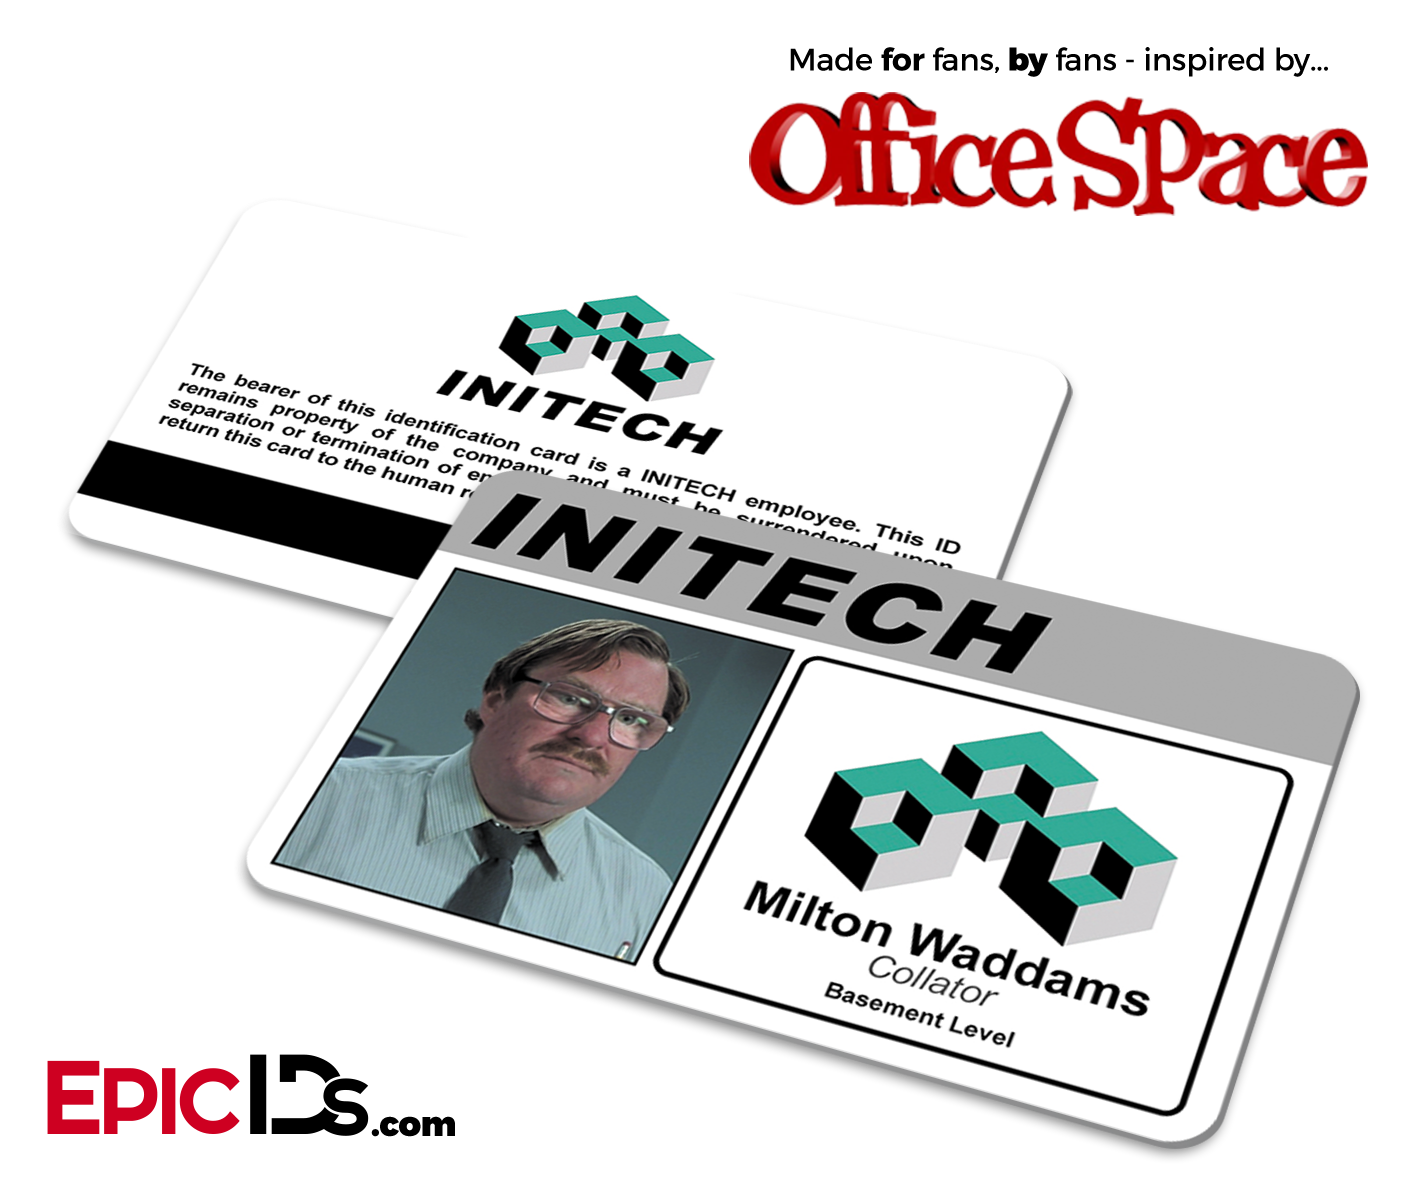 office space names. Simple Space Office Space Inspired Initech Employee ID  Name Badge  Milton Waddams Inside Names